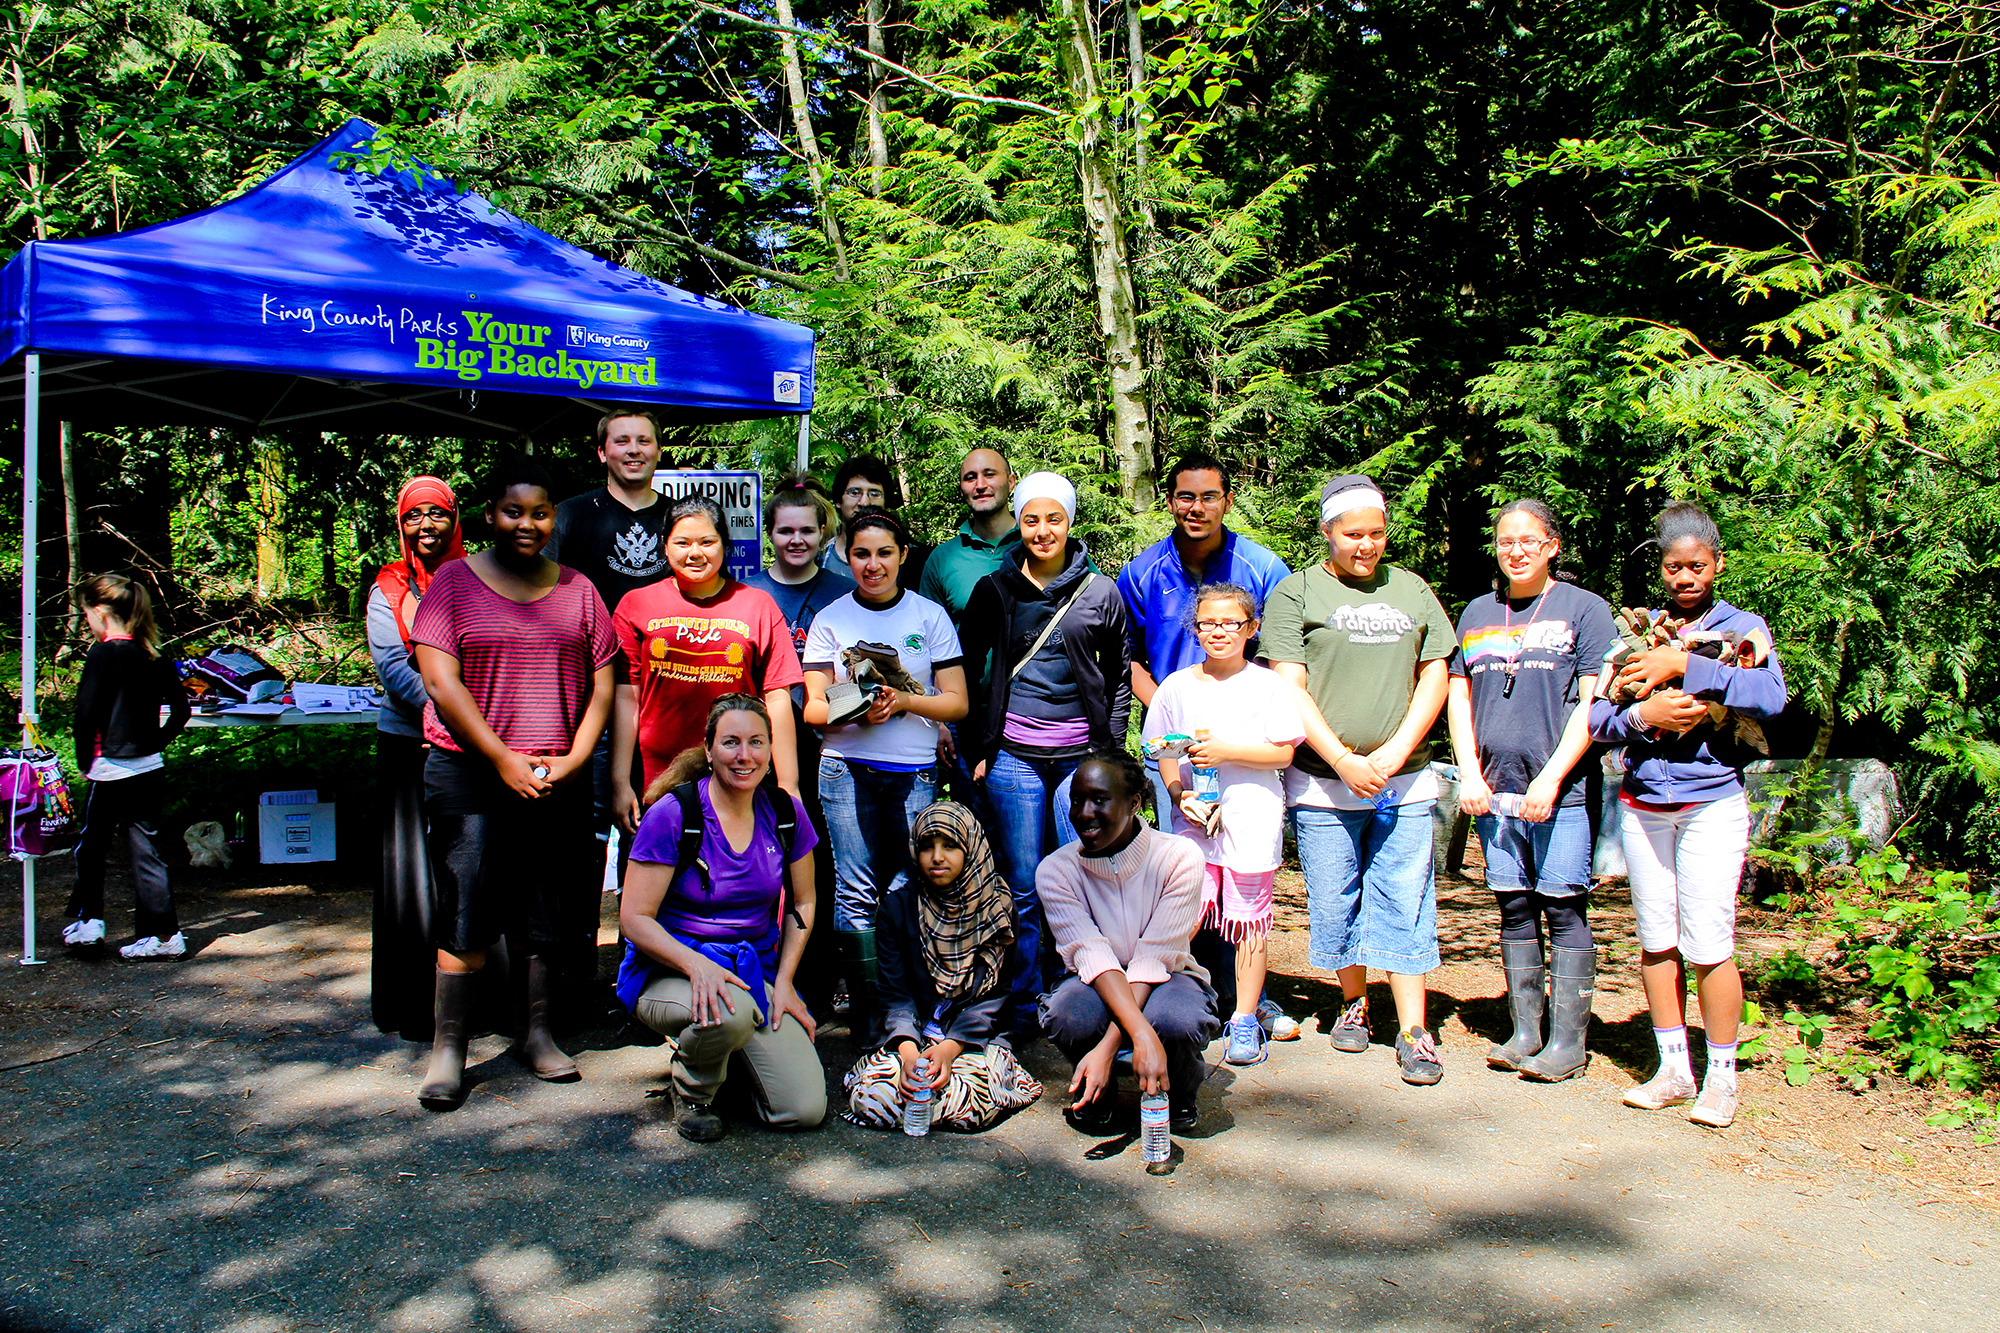 Lisa Parsons (bottom left) working with King County Parks and a group of students on the trails in Cedar Creek park